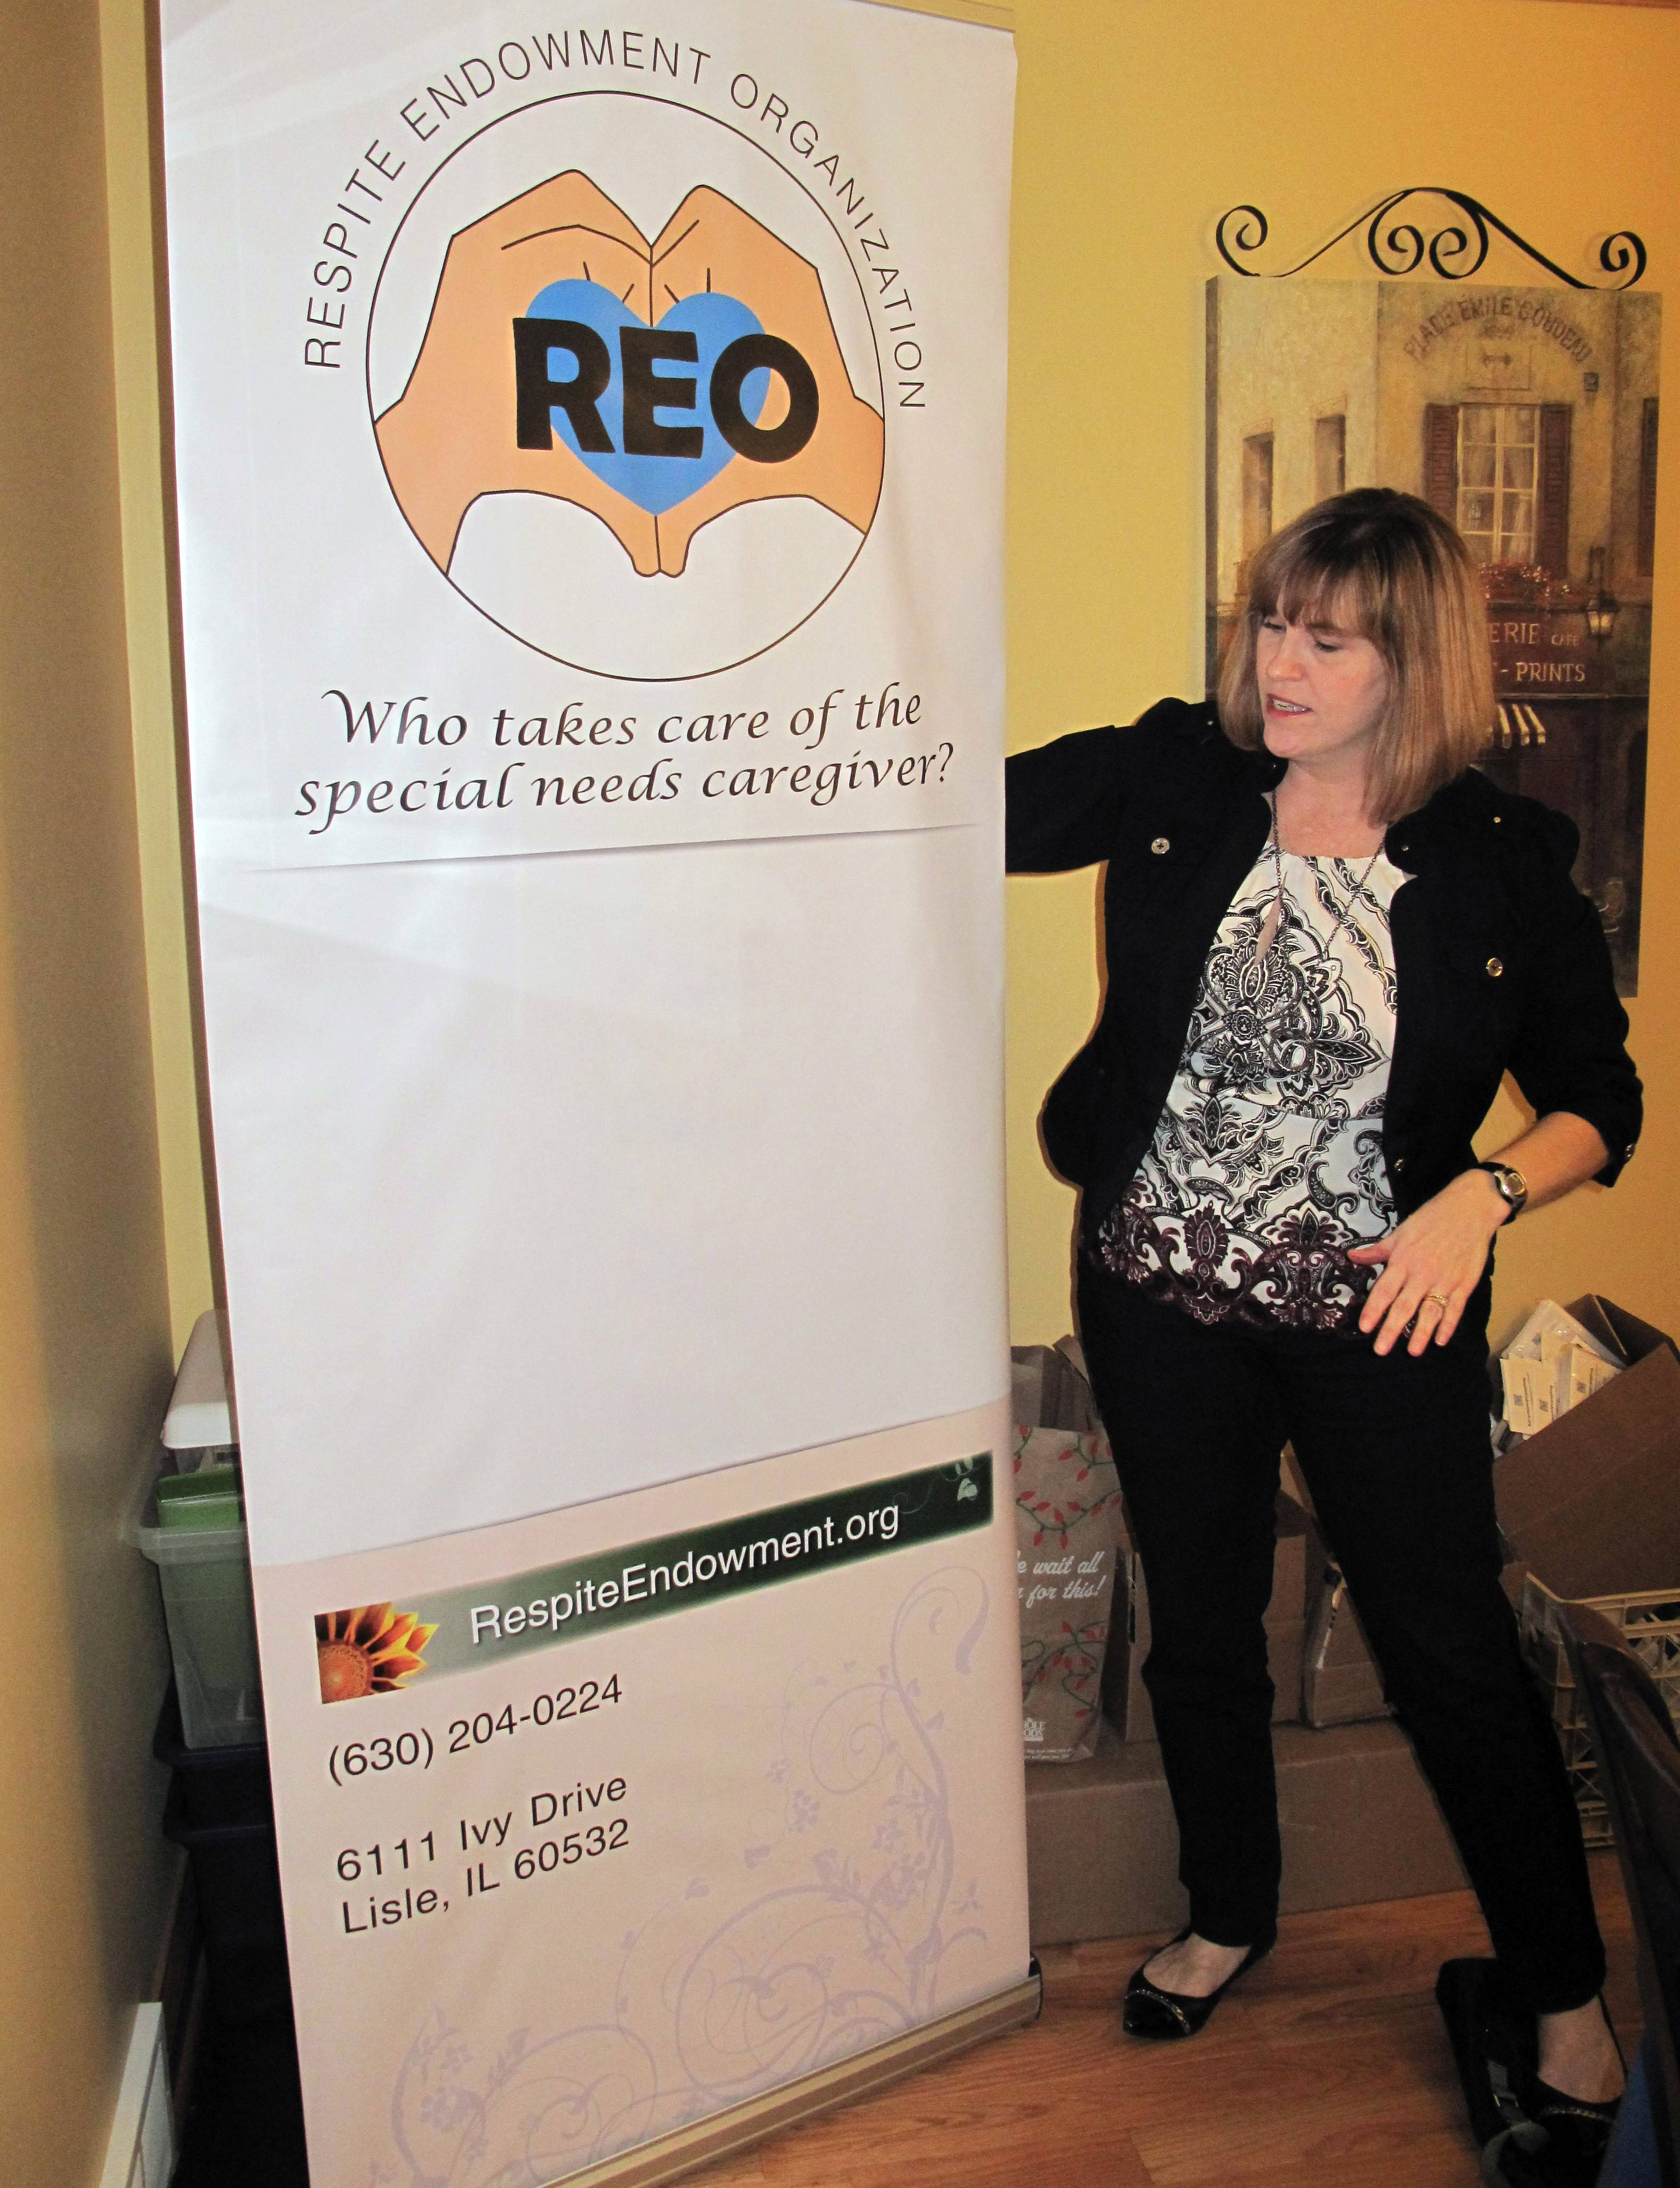 Becky Pundy, of Lisle, founded the Respite Endowment Organization in an effort to help parents of children with special needs get the break they need to take care of themselves.